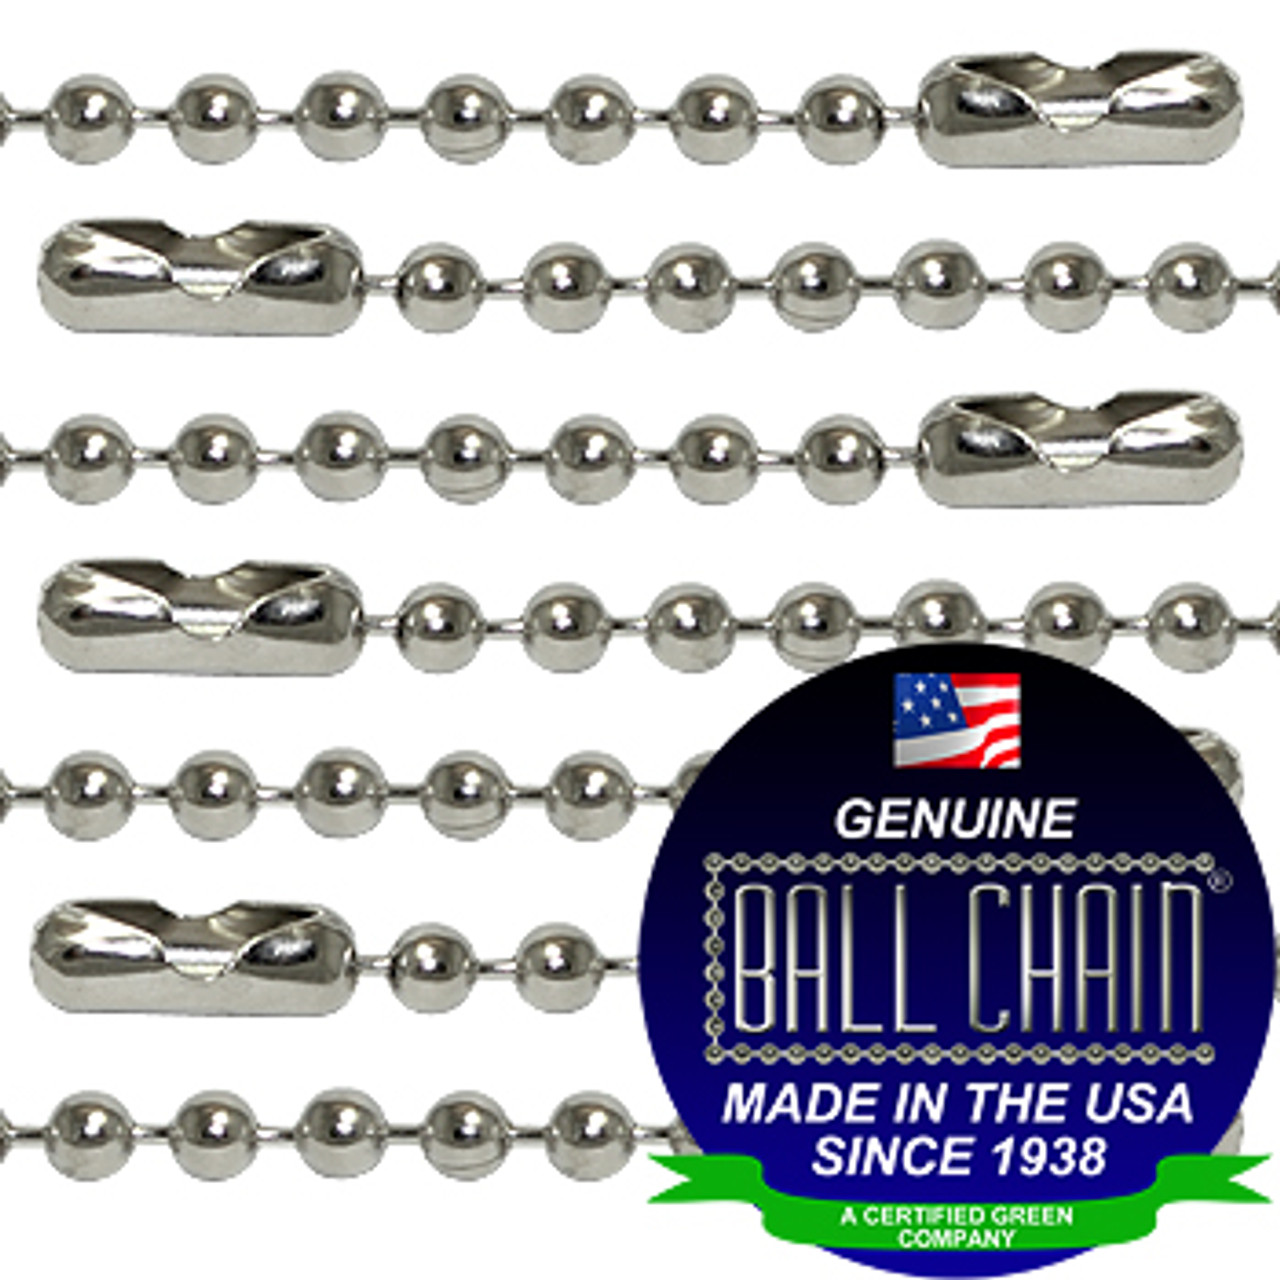 #3 Nickel Plated Steel Ball Chains with Connector - 14 Inch Length